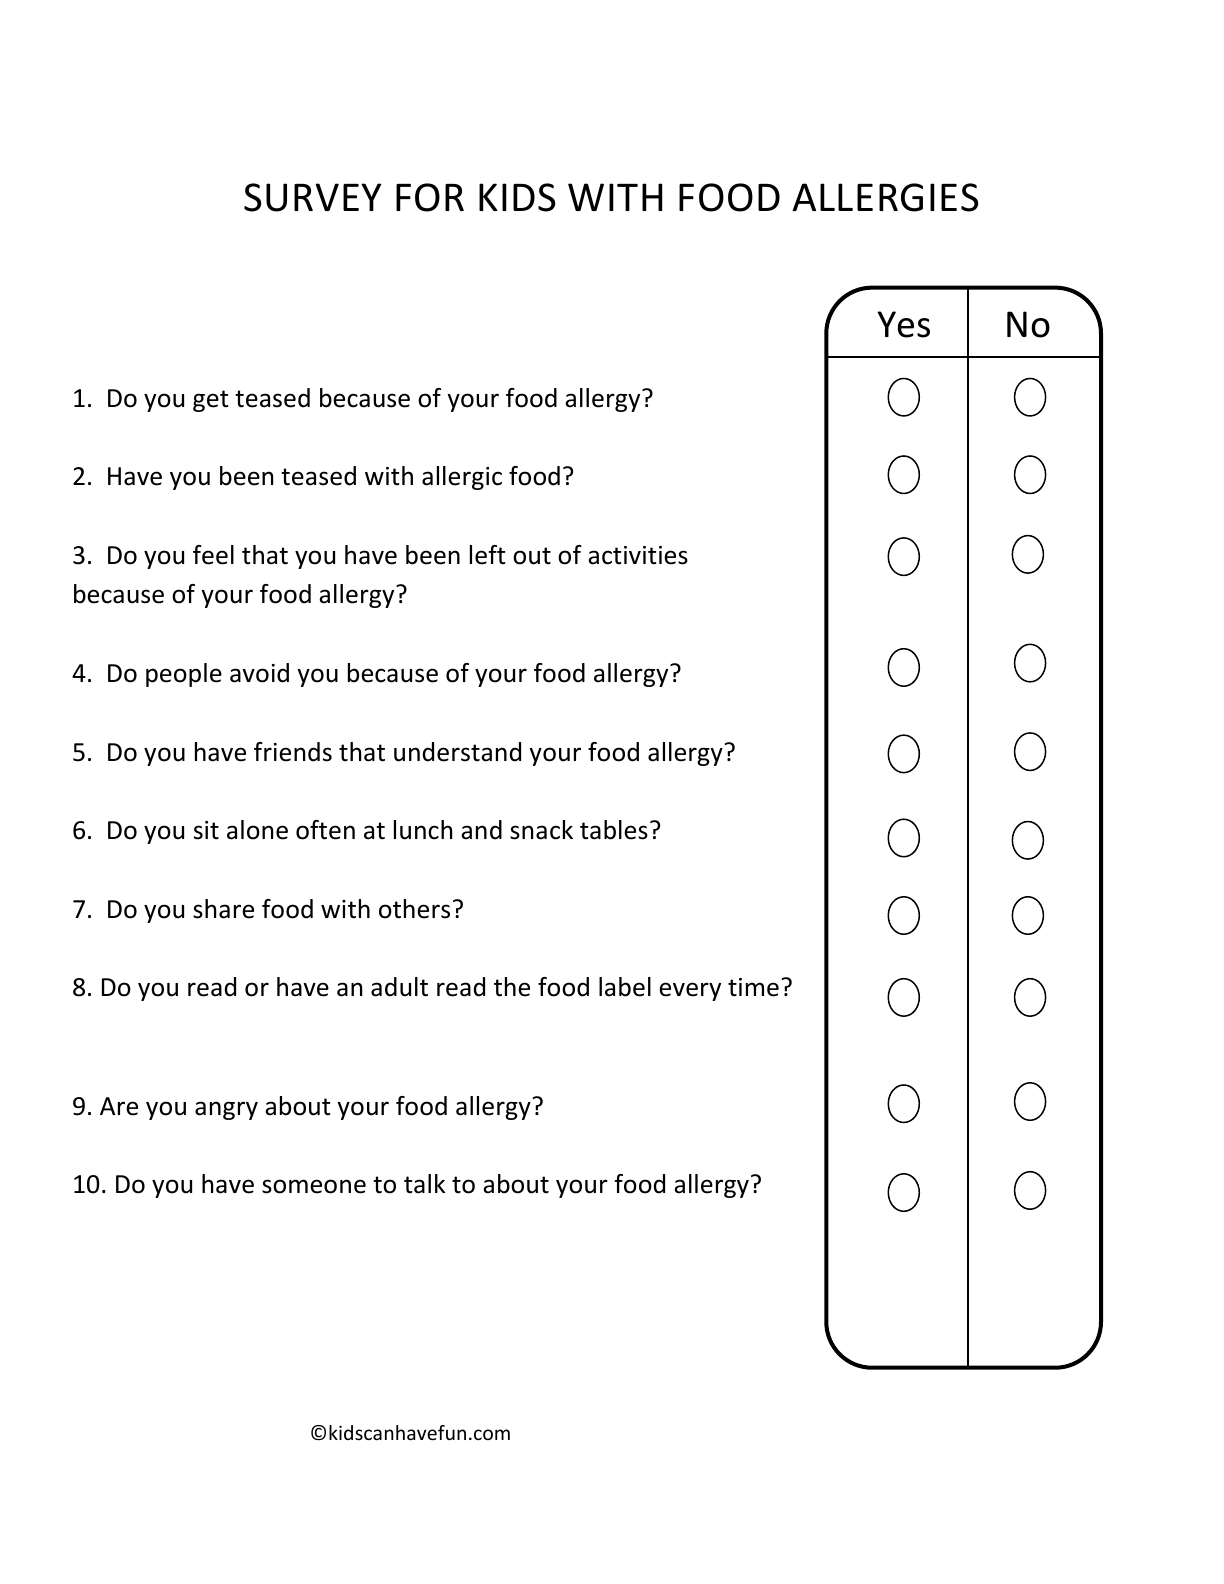 Bully Survey For Kids With Food Allergies